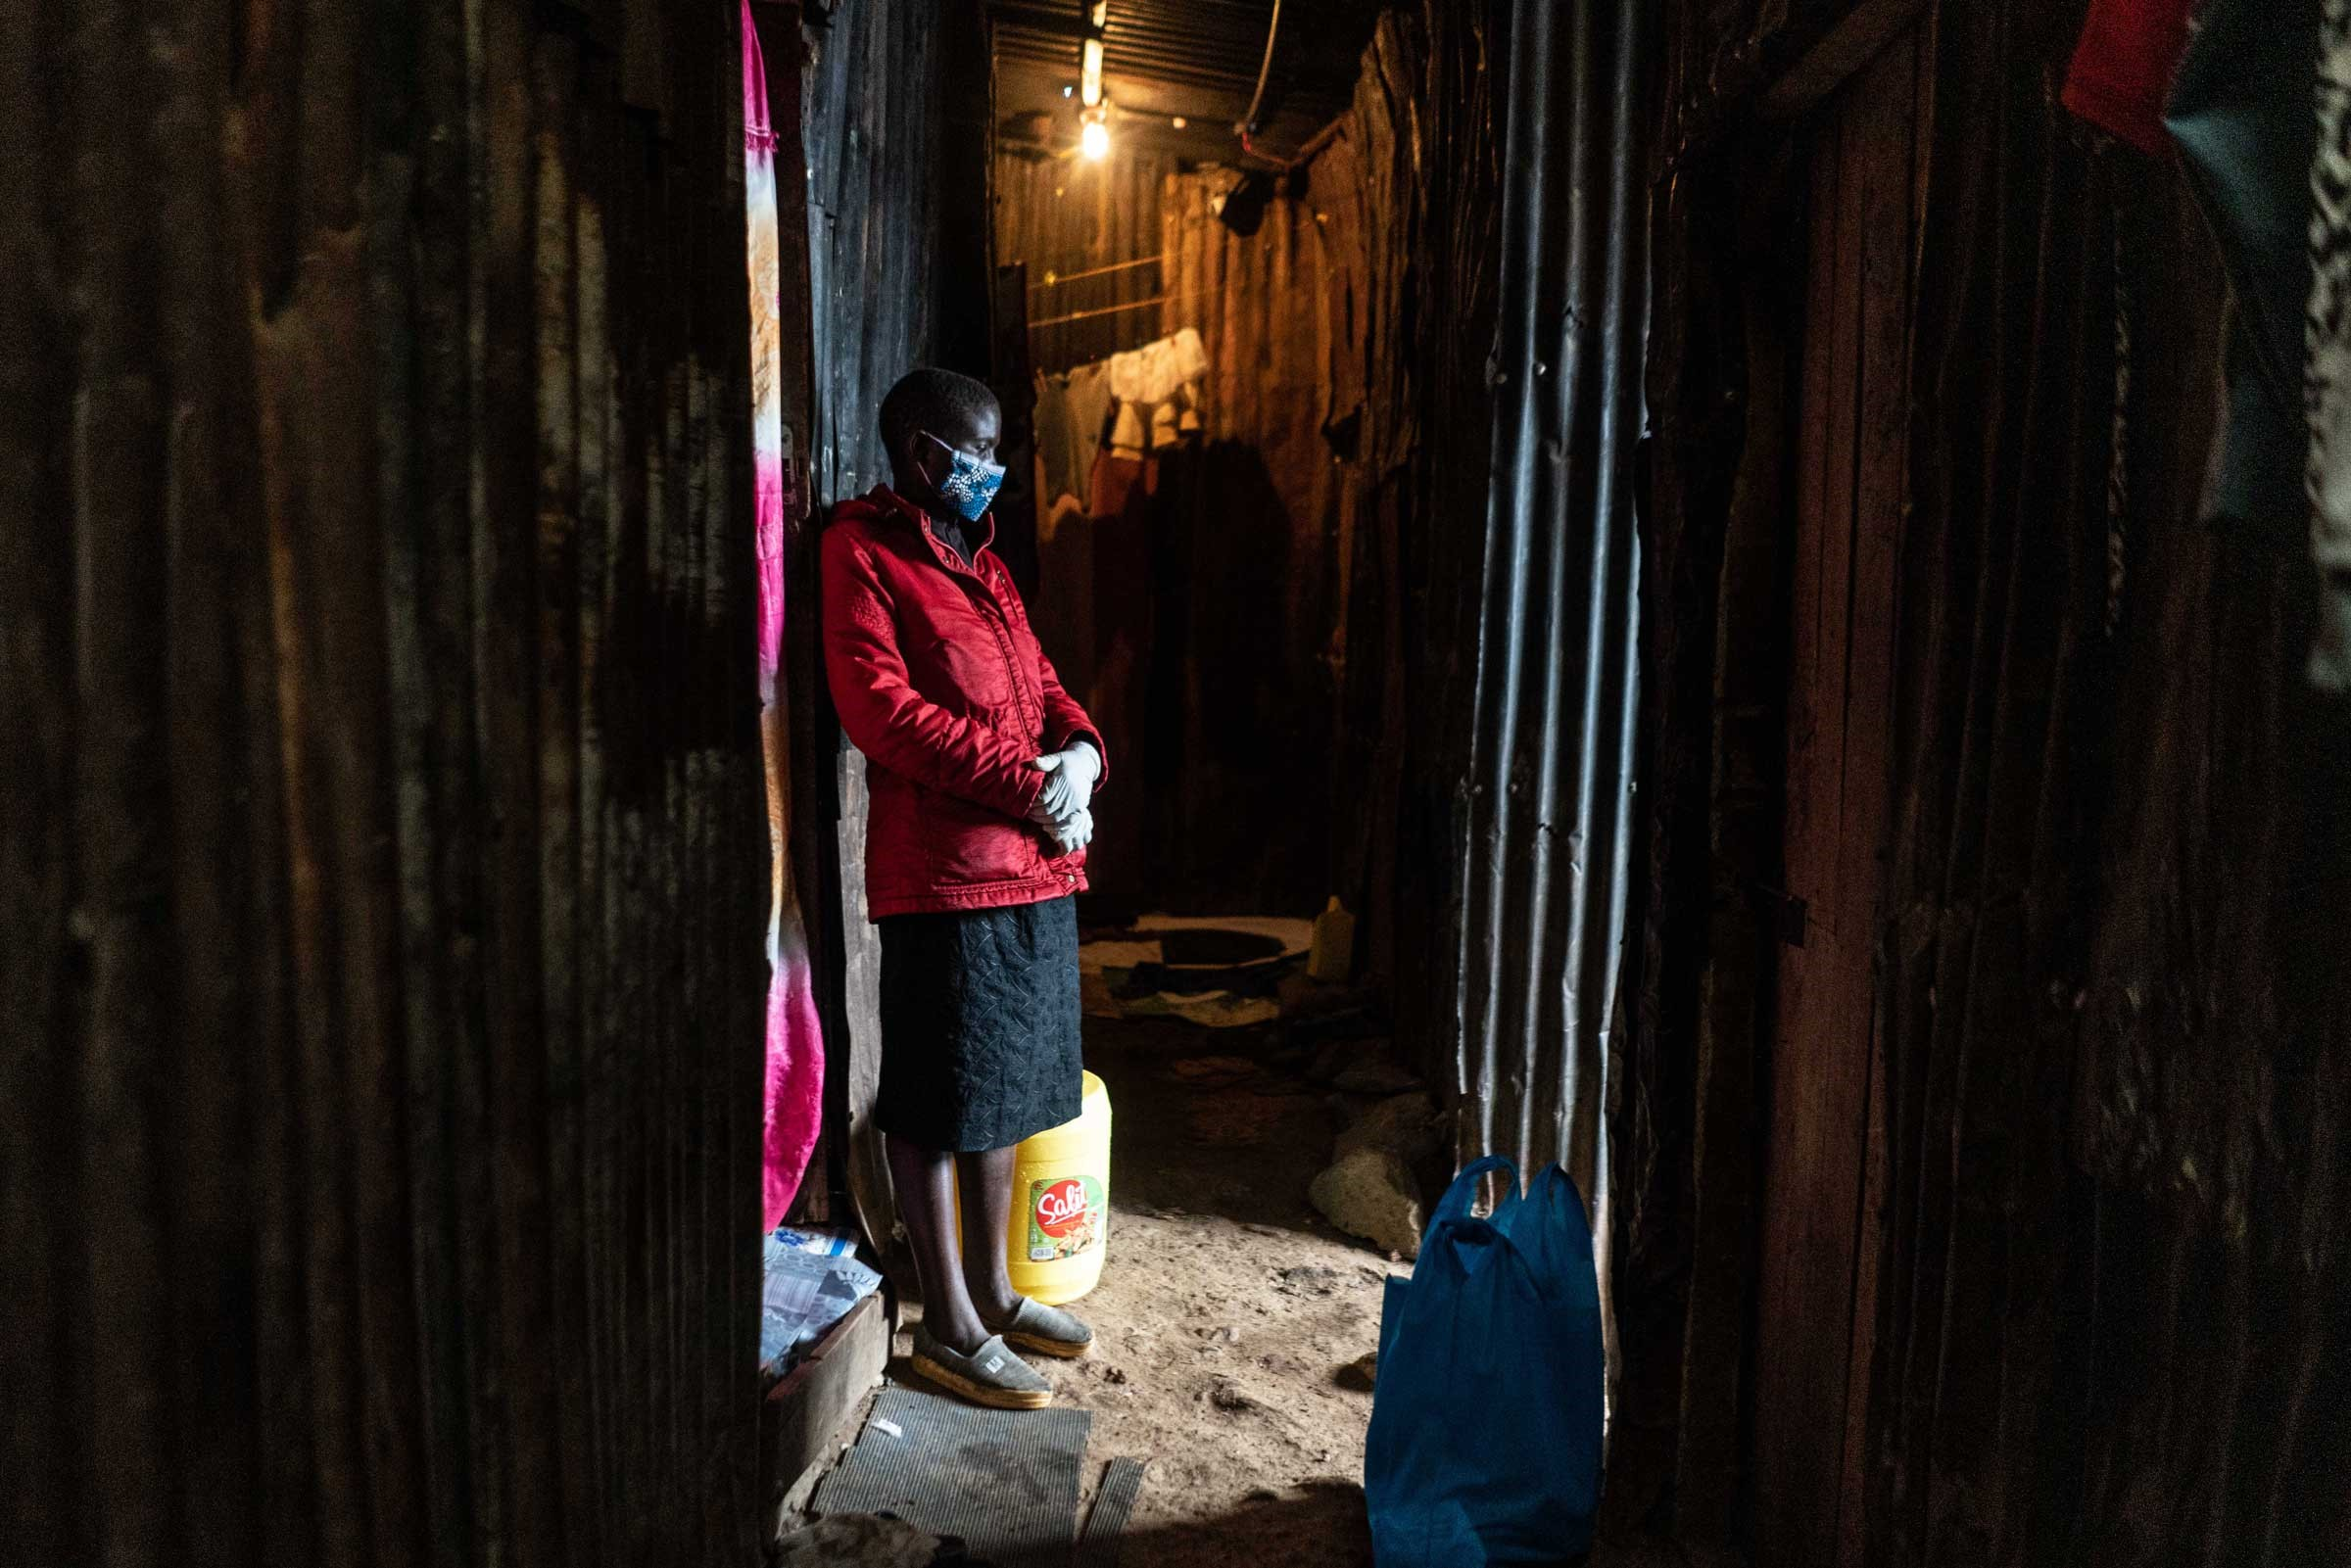 A Kenyan woman wearing a mask stands in a hallway waiting for food rations.